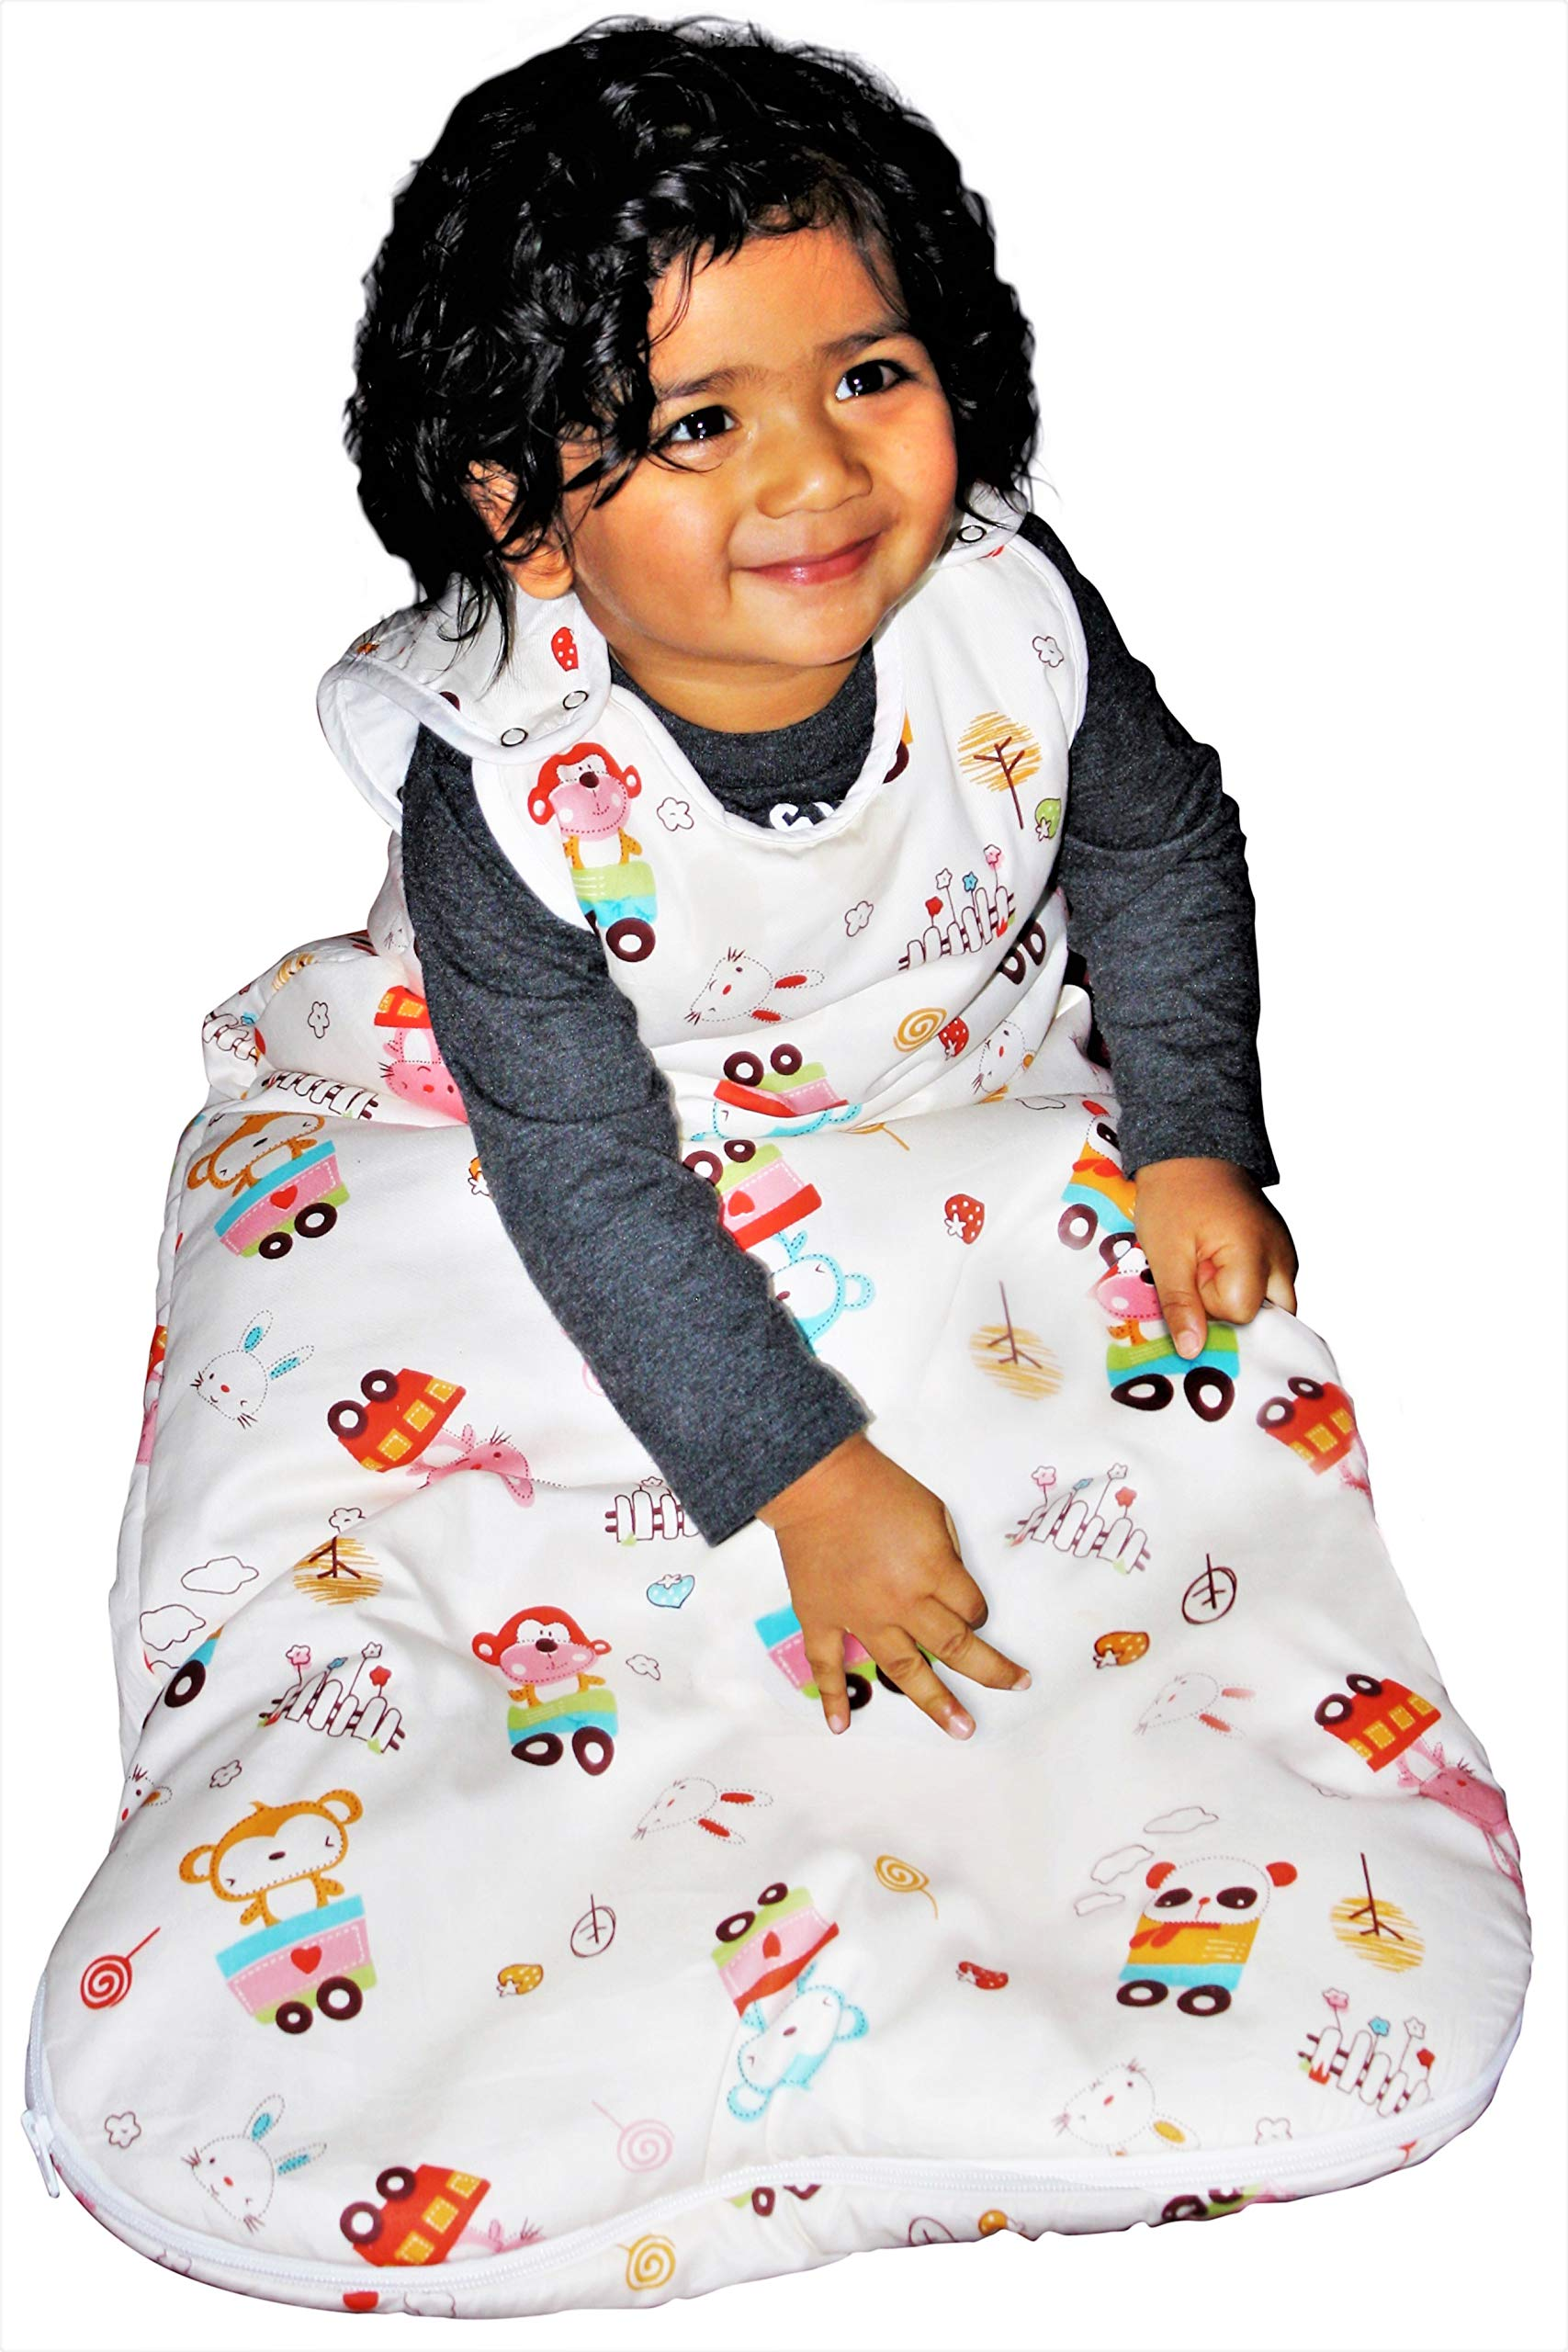 Baby Sleeping Bag Unisex, 2.5 Tog Winter Sleep Sack | Warm | 100% Cotton Lining Exterior & Interior | 100% Polyester Filling (18-36 Months) by Les Tulipes du Nord